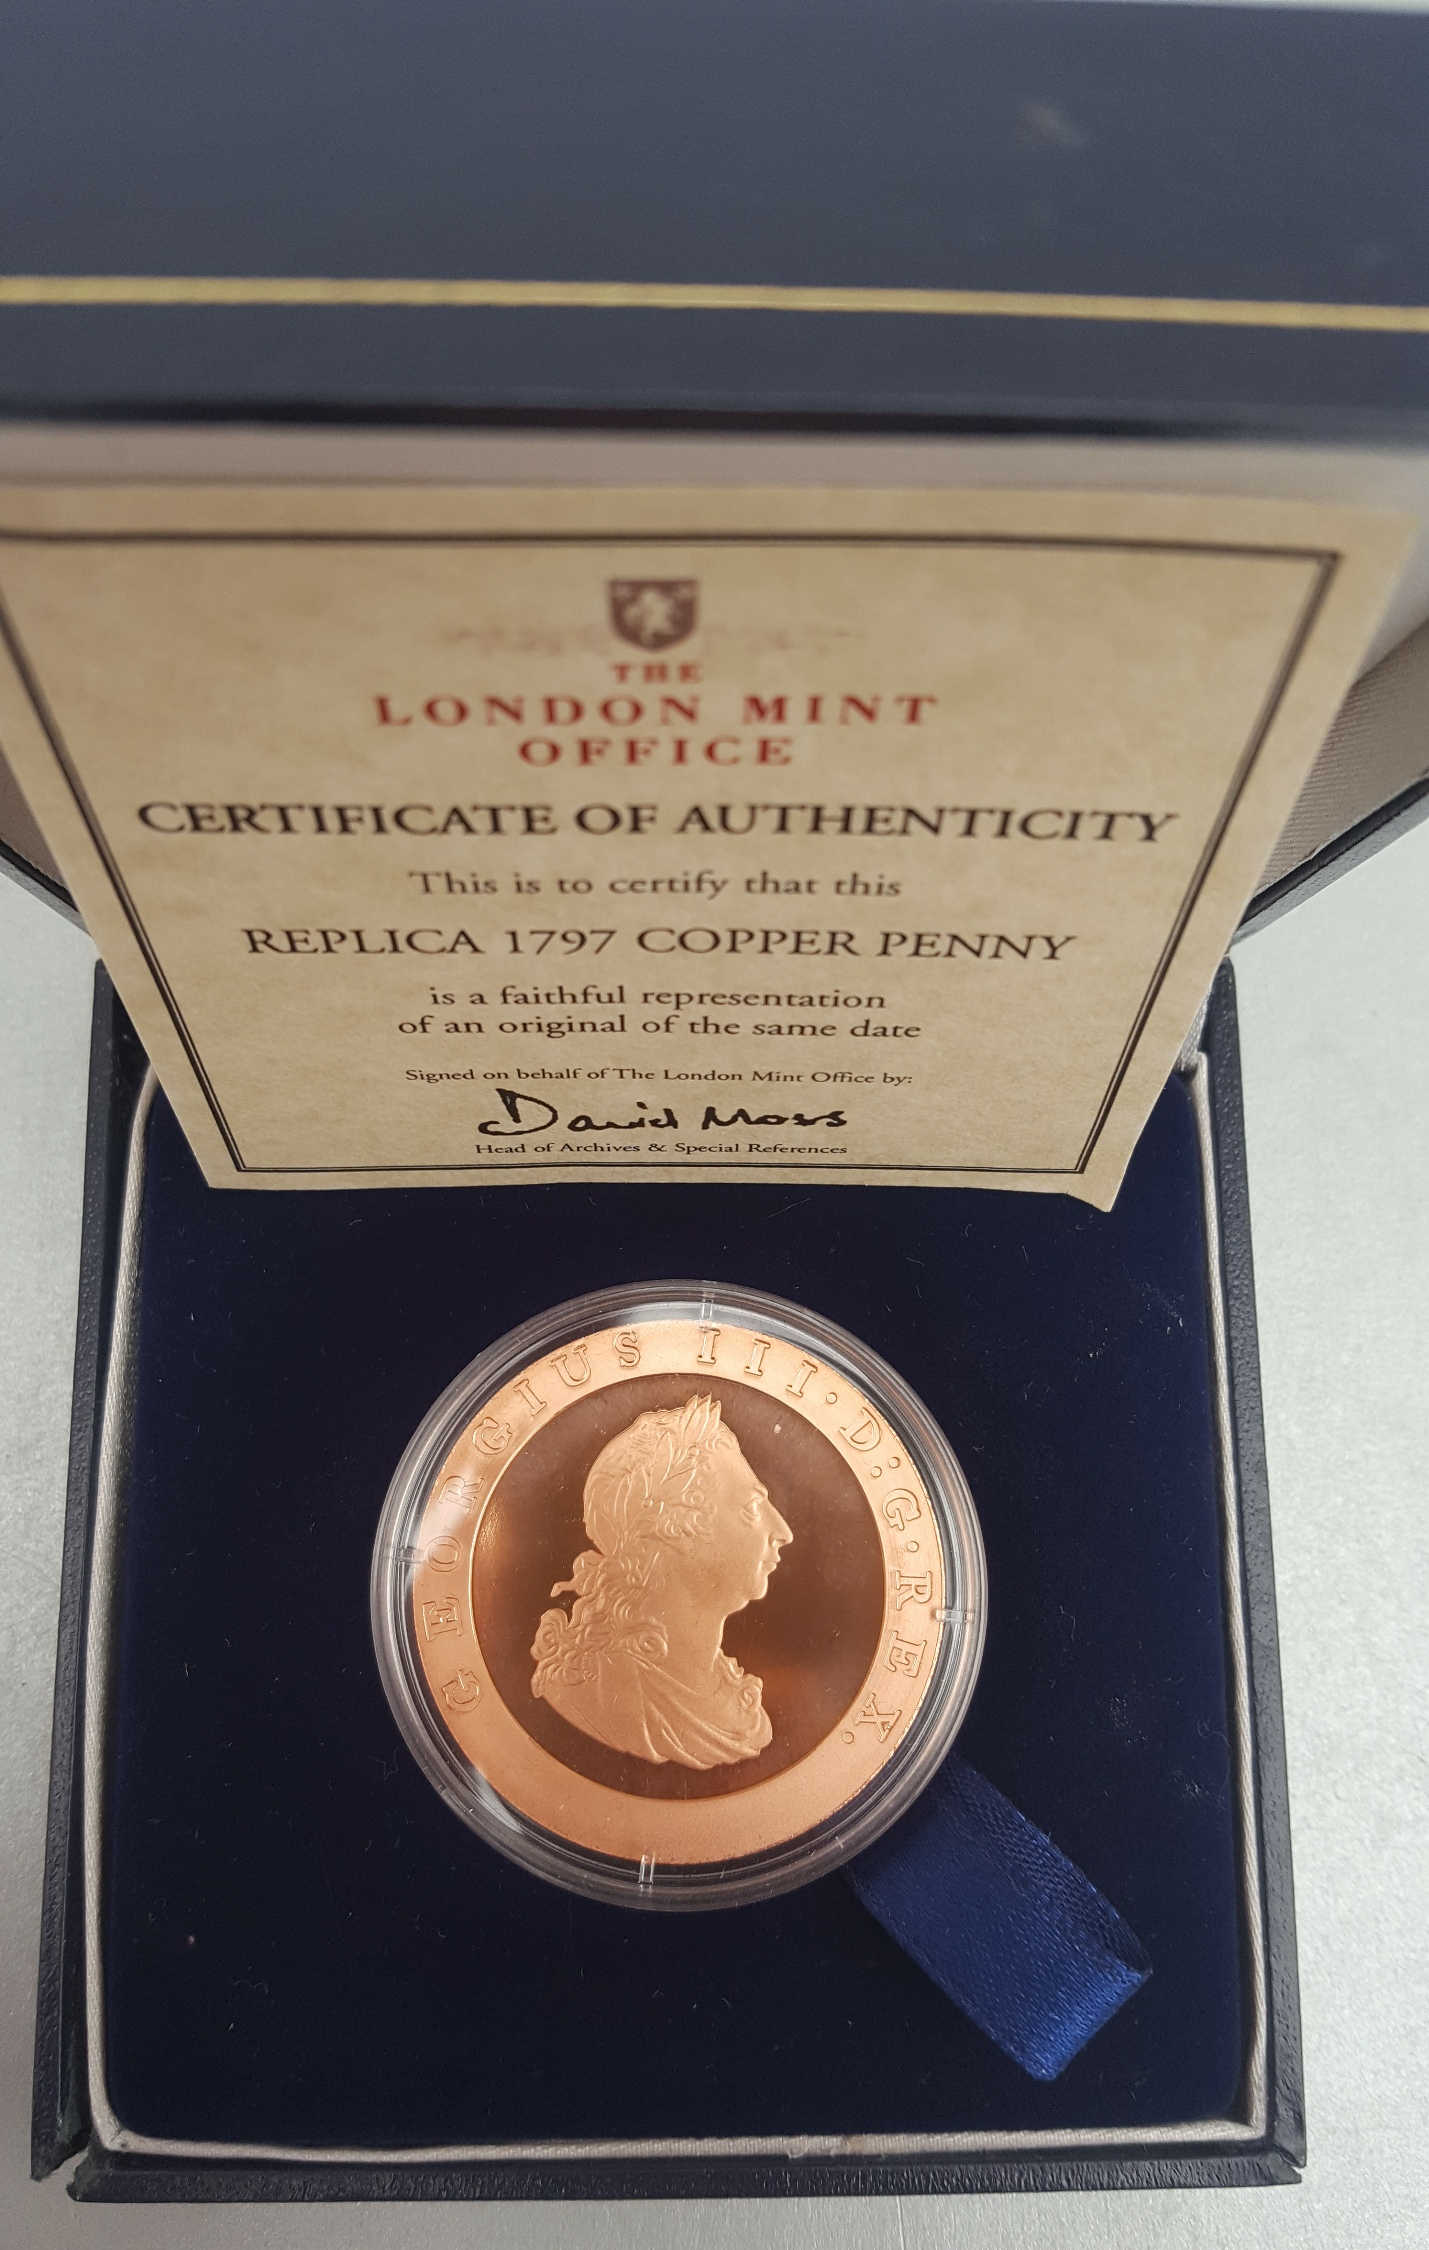 Lot 64 - Collectable Coin London Mint Office Replica 1797 Copper Penny